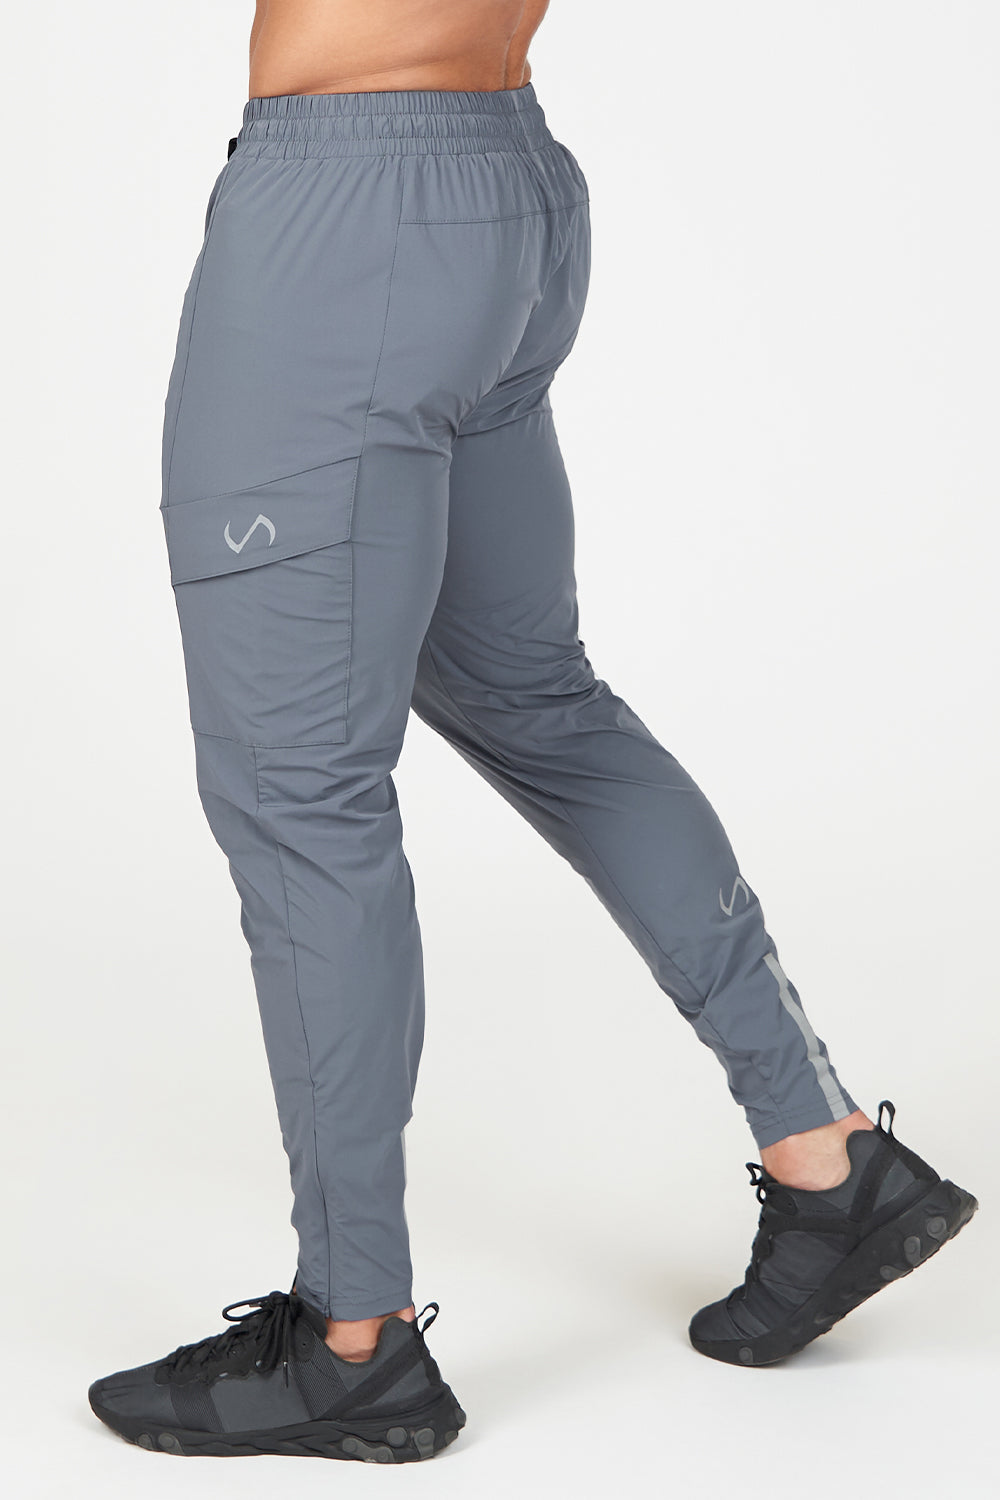 TLF Element Air-Flex Gym Joggers - TLF Apparel | Take Life Further